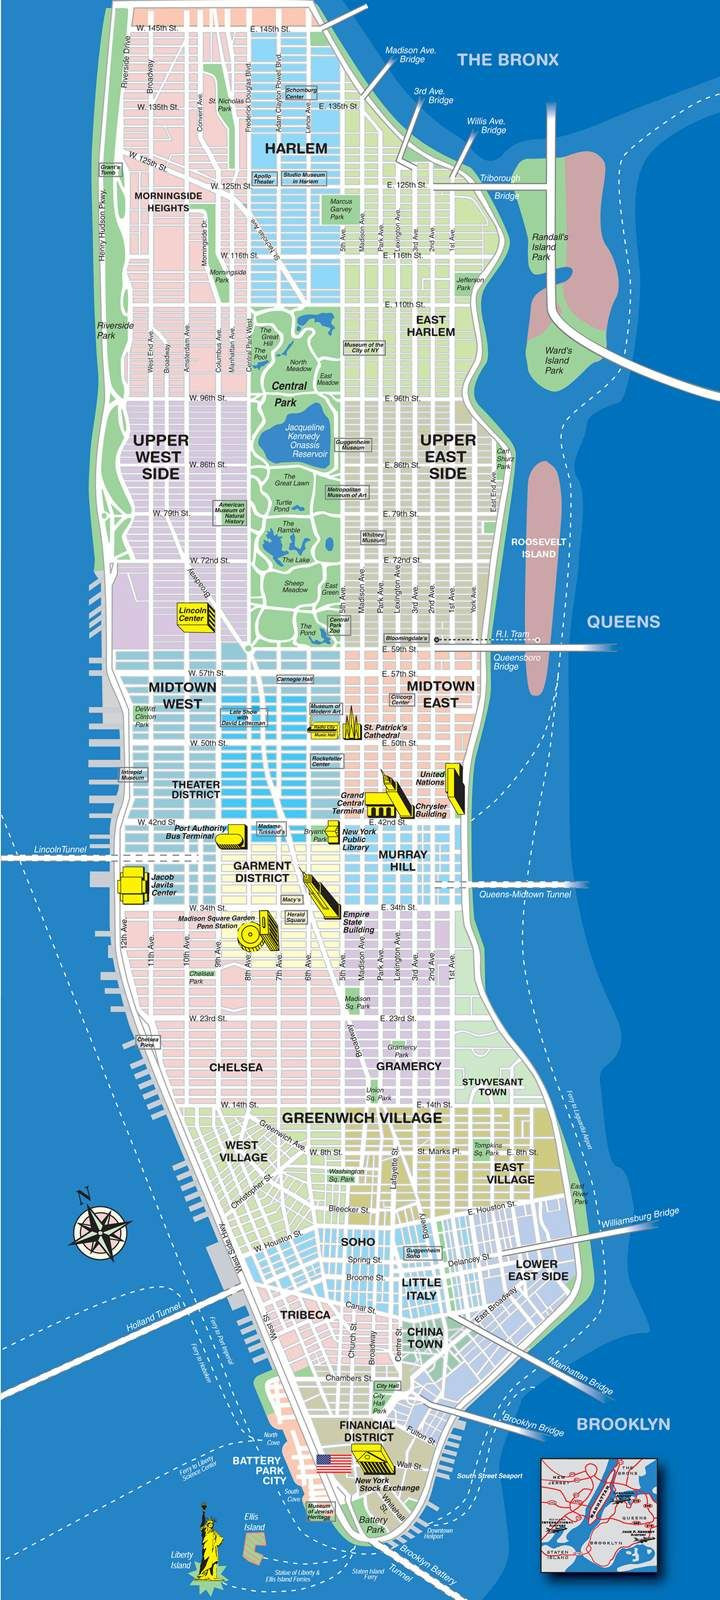 Printable Map Brisbane Cbd Best Of High Resolution Map Of Manhattan For Print Or